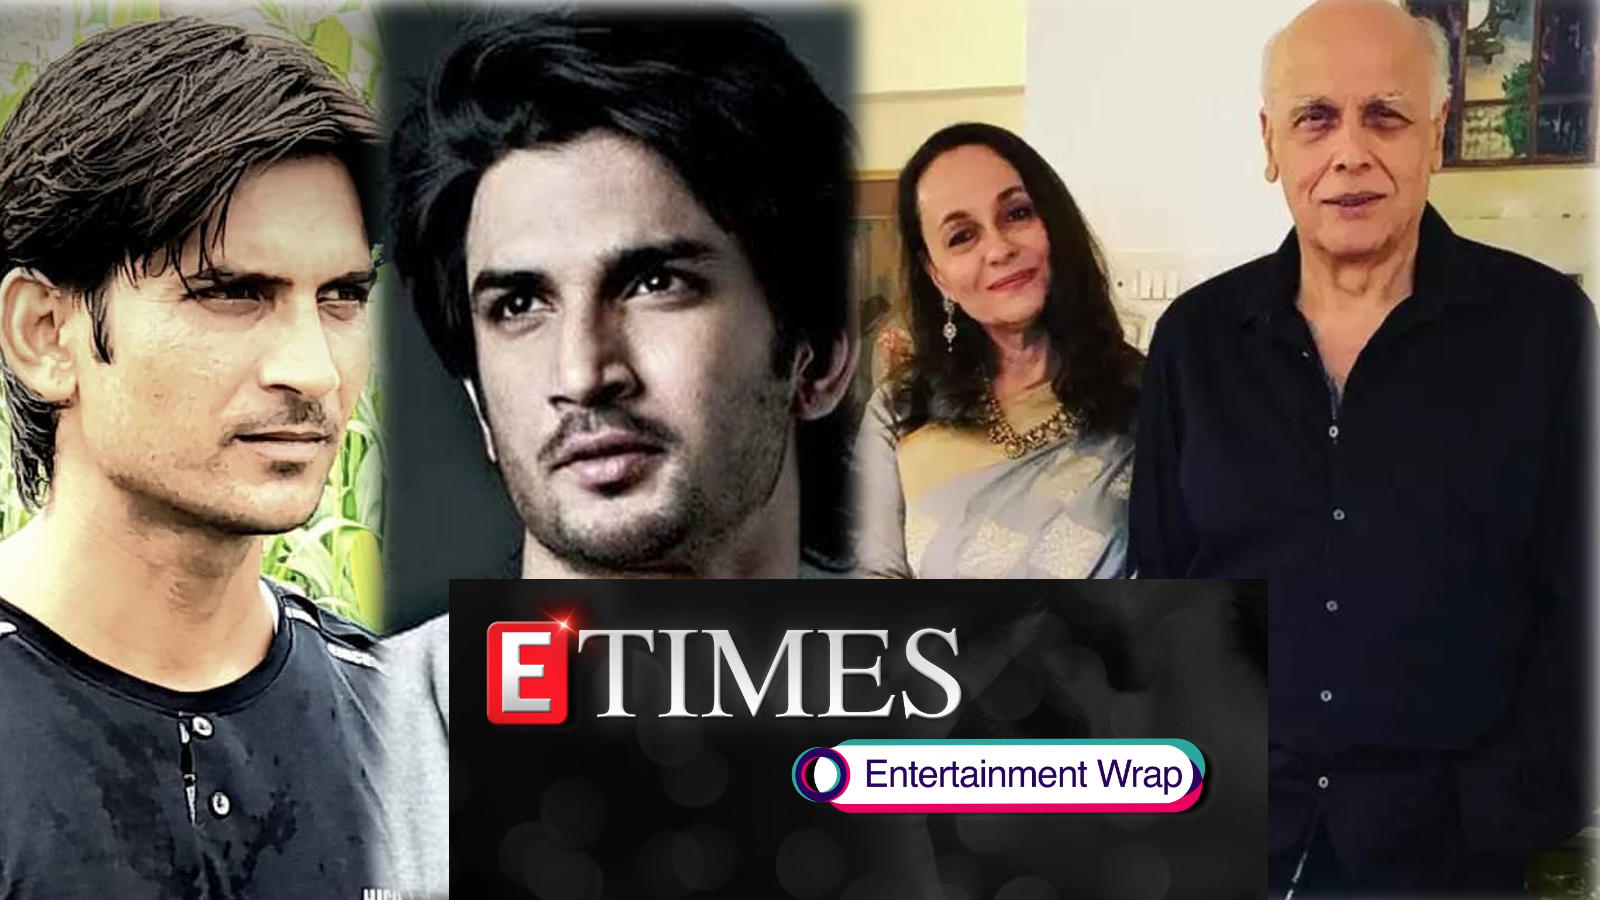 videos-of-late-sushant-singh-rajputs-doppelganger-go-viral-soni-razdan-blasts-netizen-claiming-mahesh-bhatt-is-a-flag-bearer-of-nepotism-and-more-